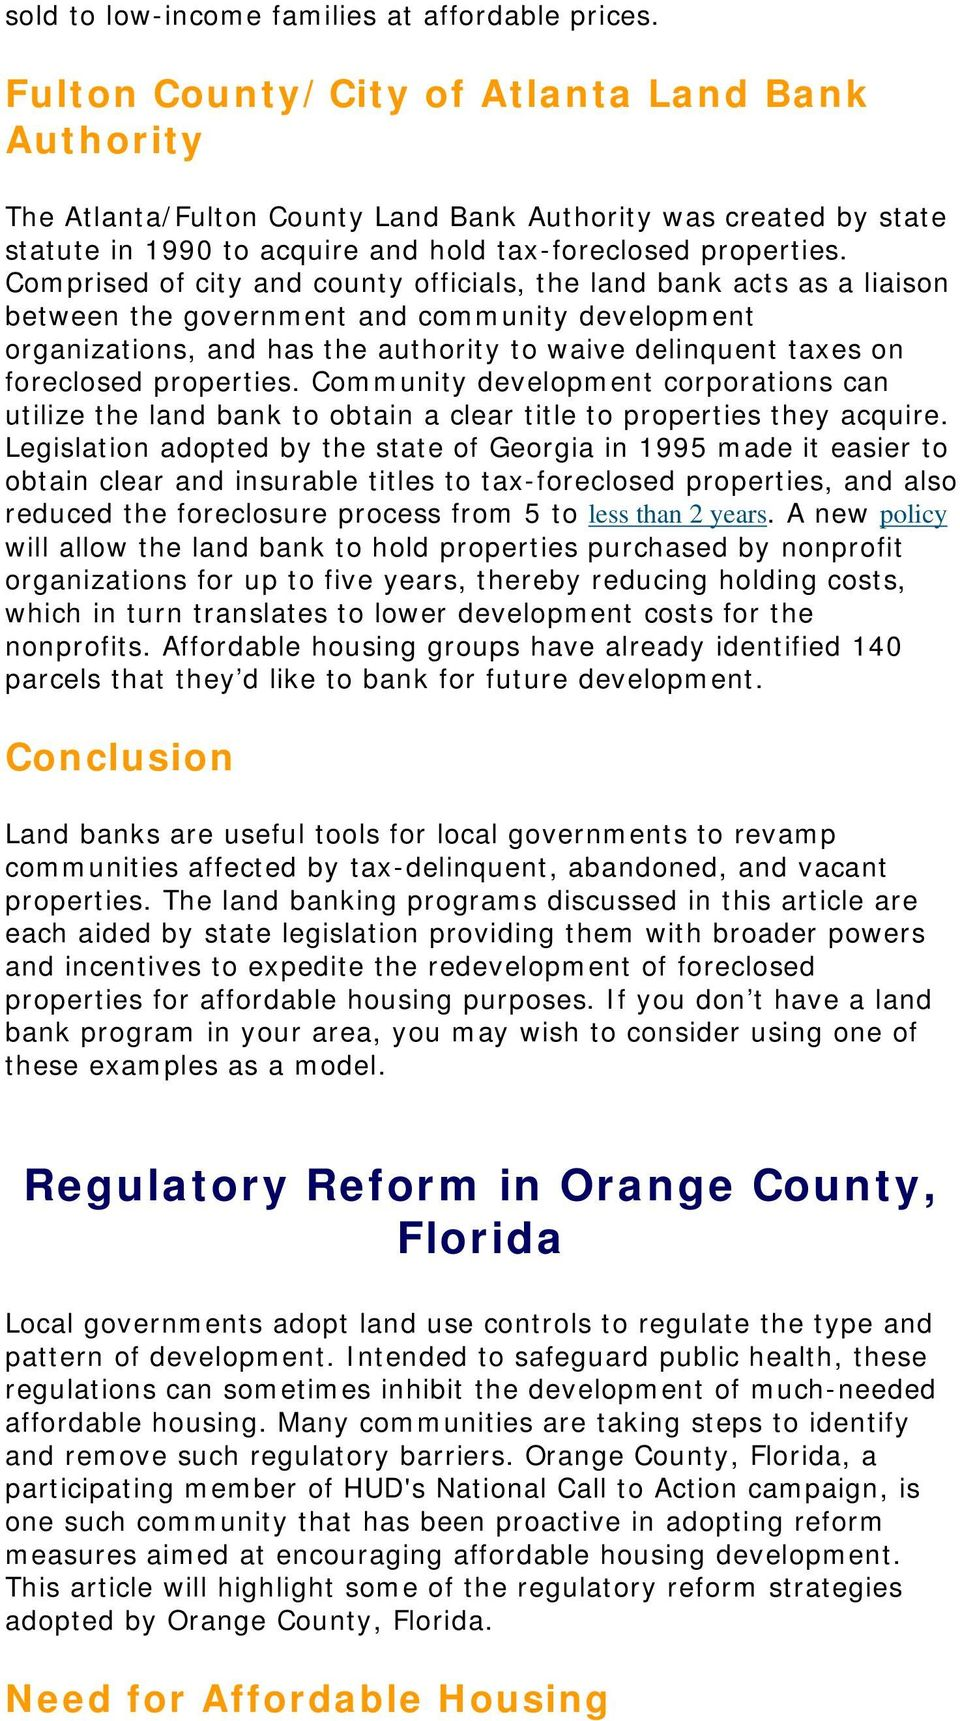 Comprised of city and county officials, the land bank acts as a liaison between the government and community development organizations, and has the authority to waive delinquent taxes on foreclosed